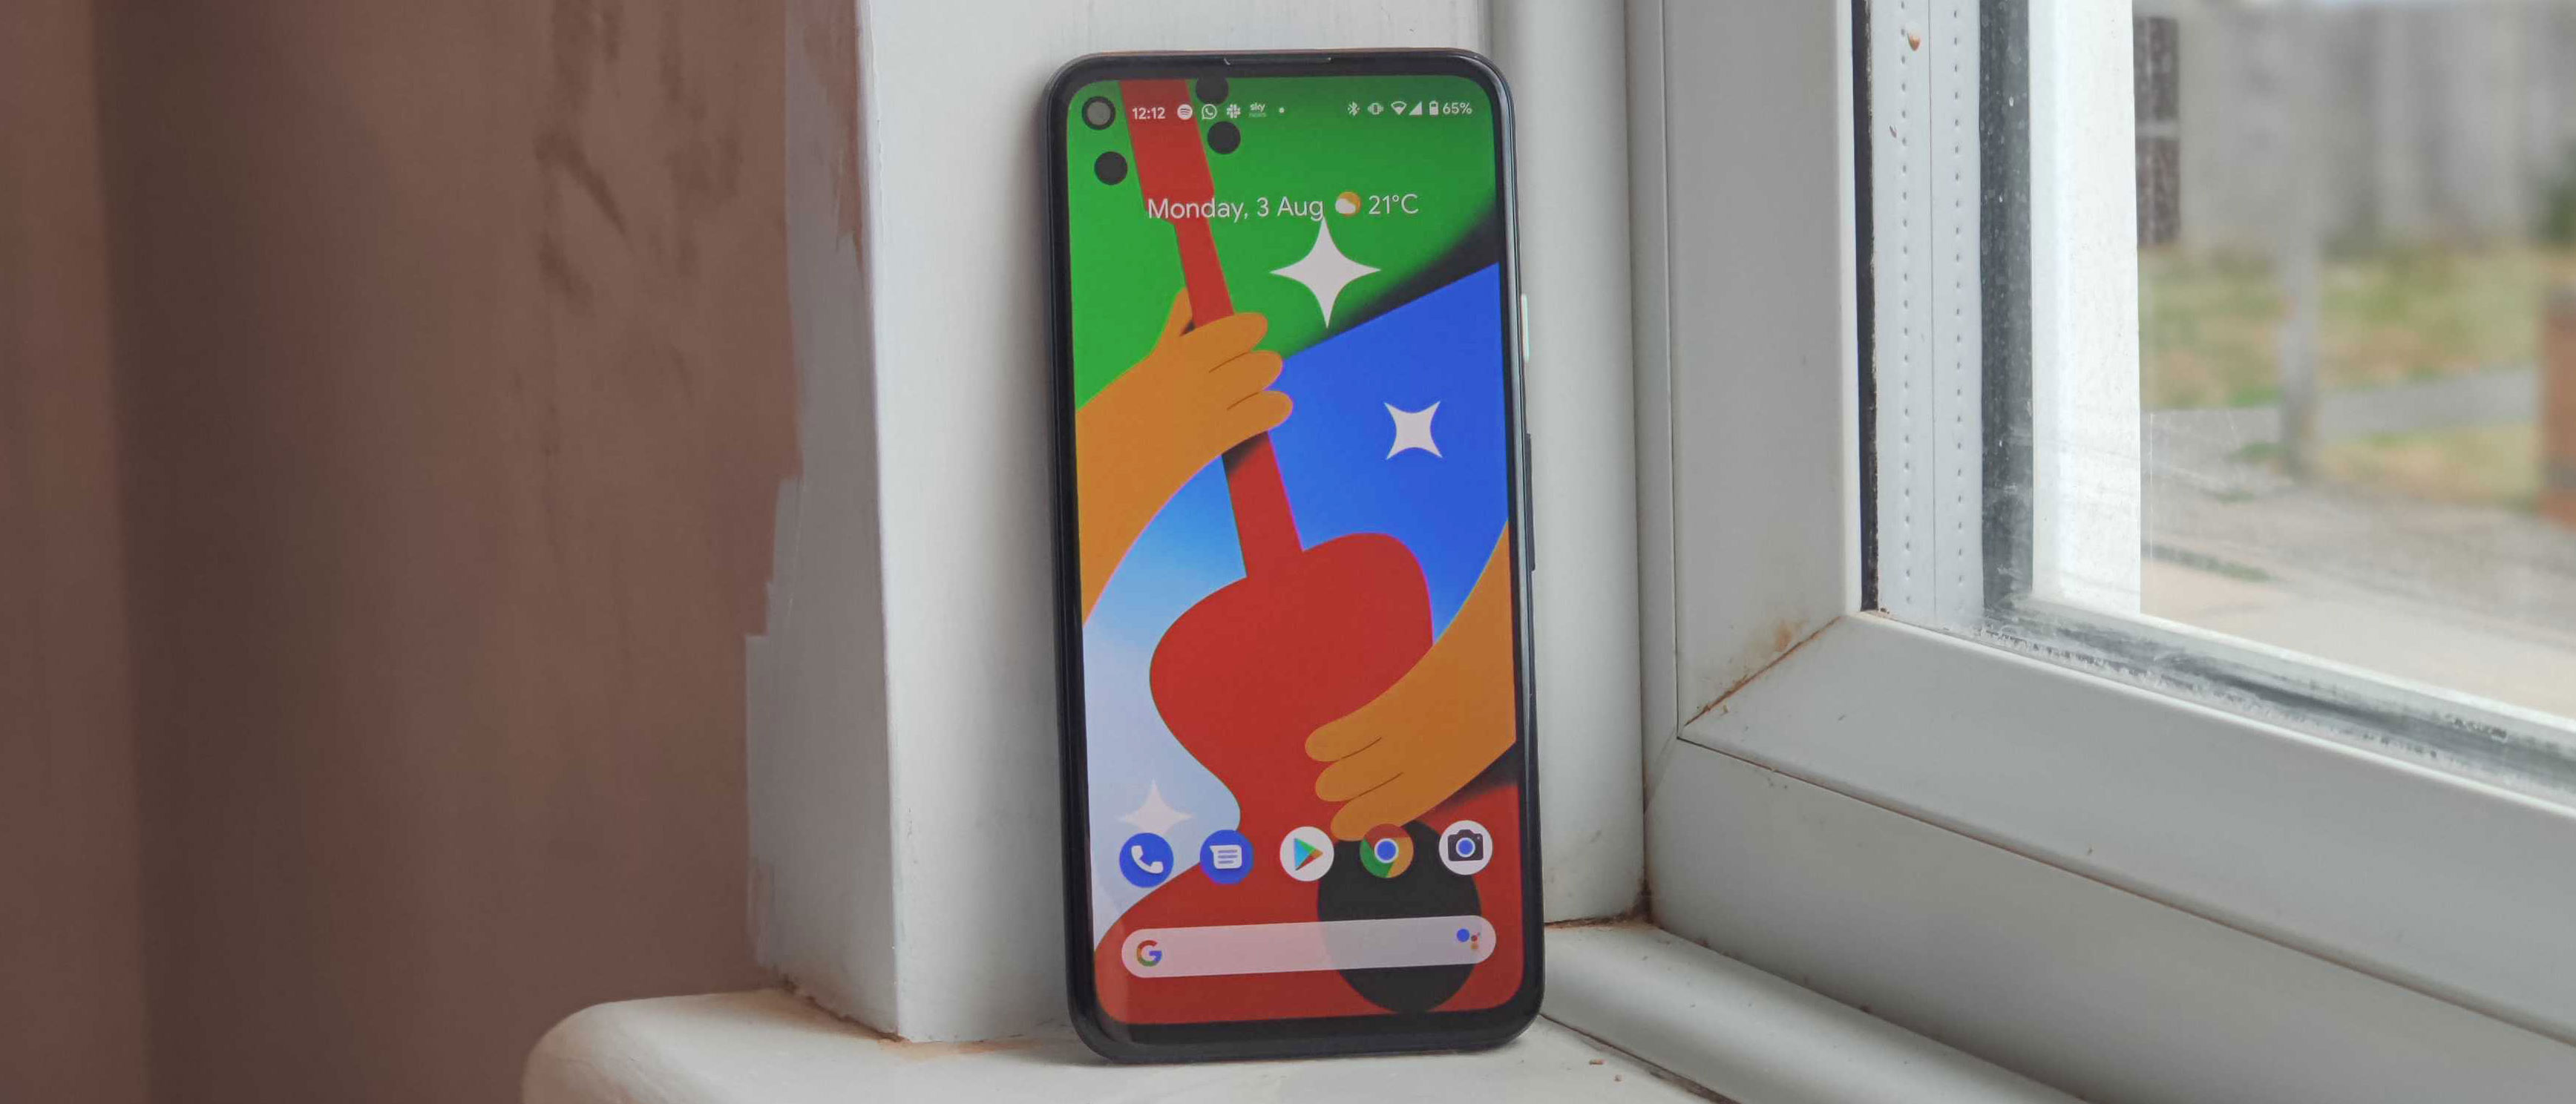 Google Pixel 4a review: impressive camera, affordable price,  one-hand-friendly | TechRadar